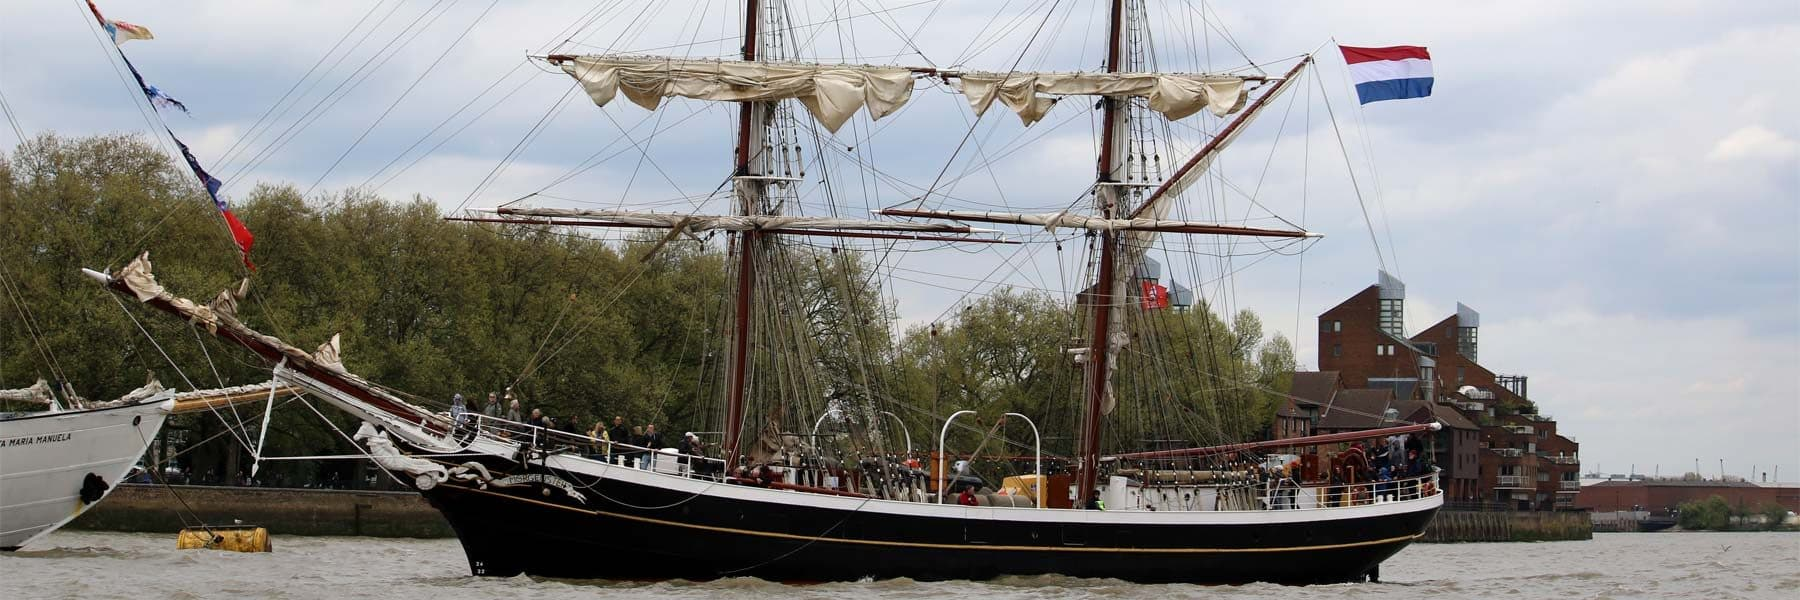 Tall Ship Morgenster moored at the Royal Borough of Greenwich